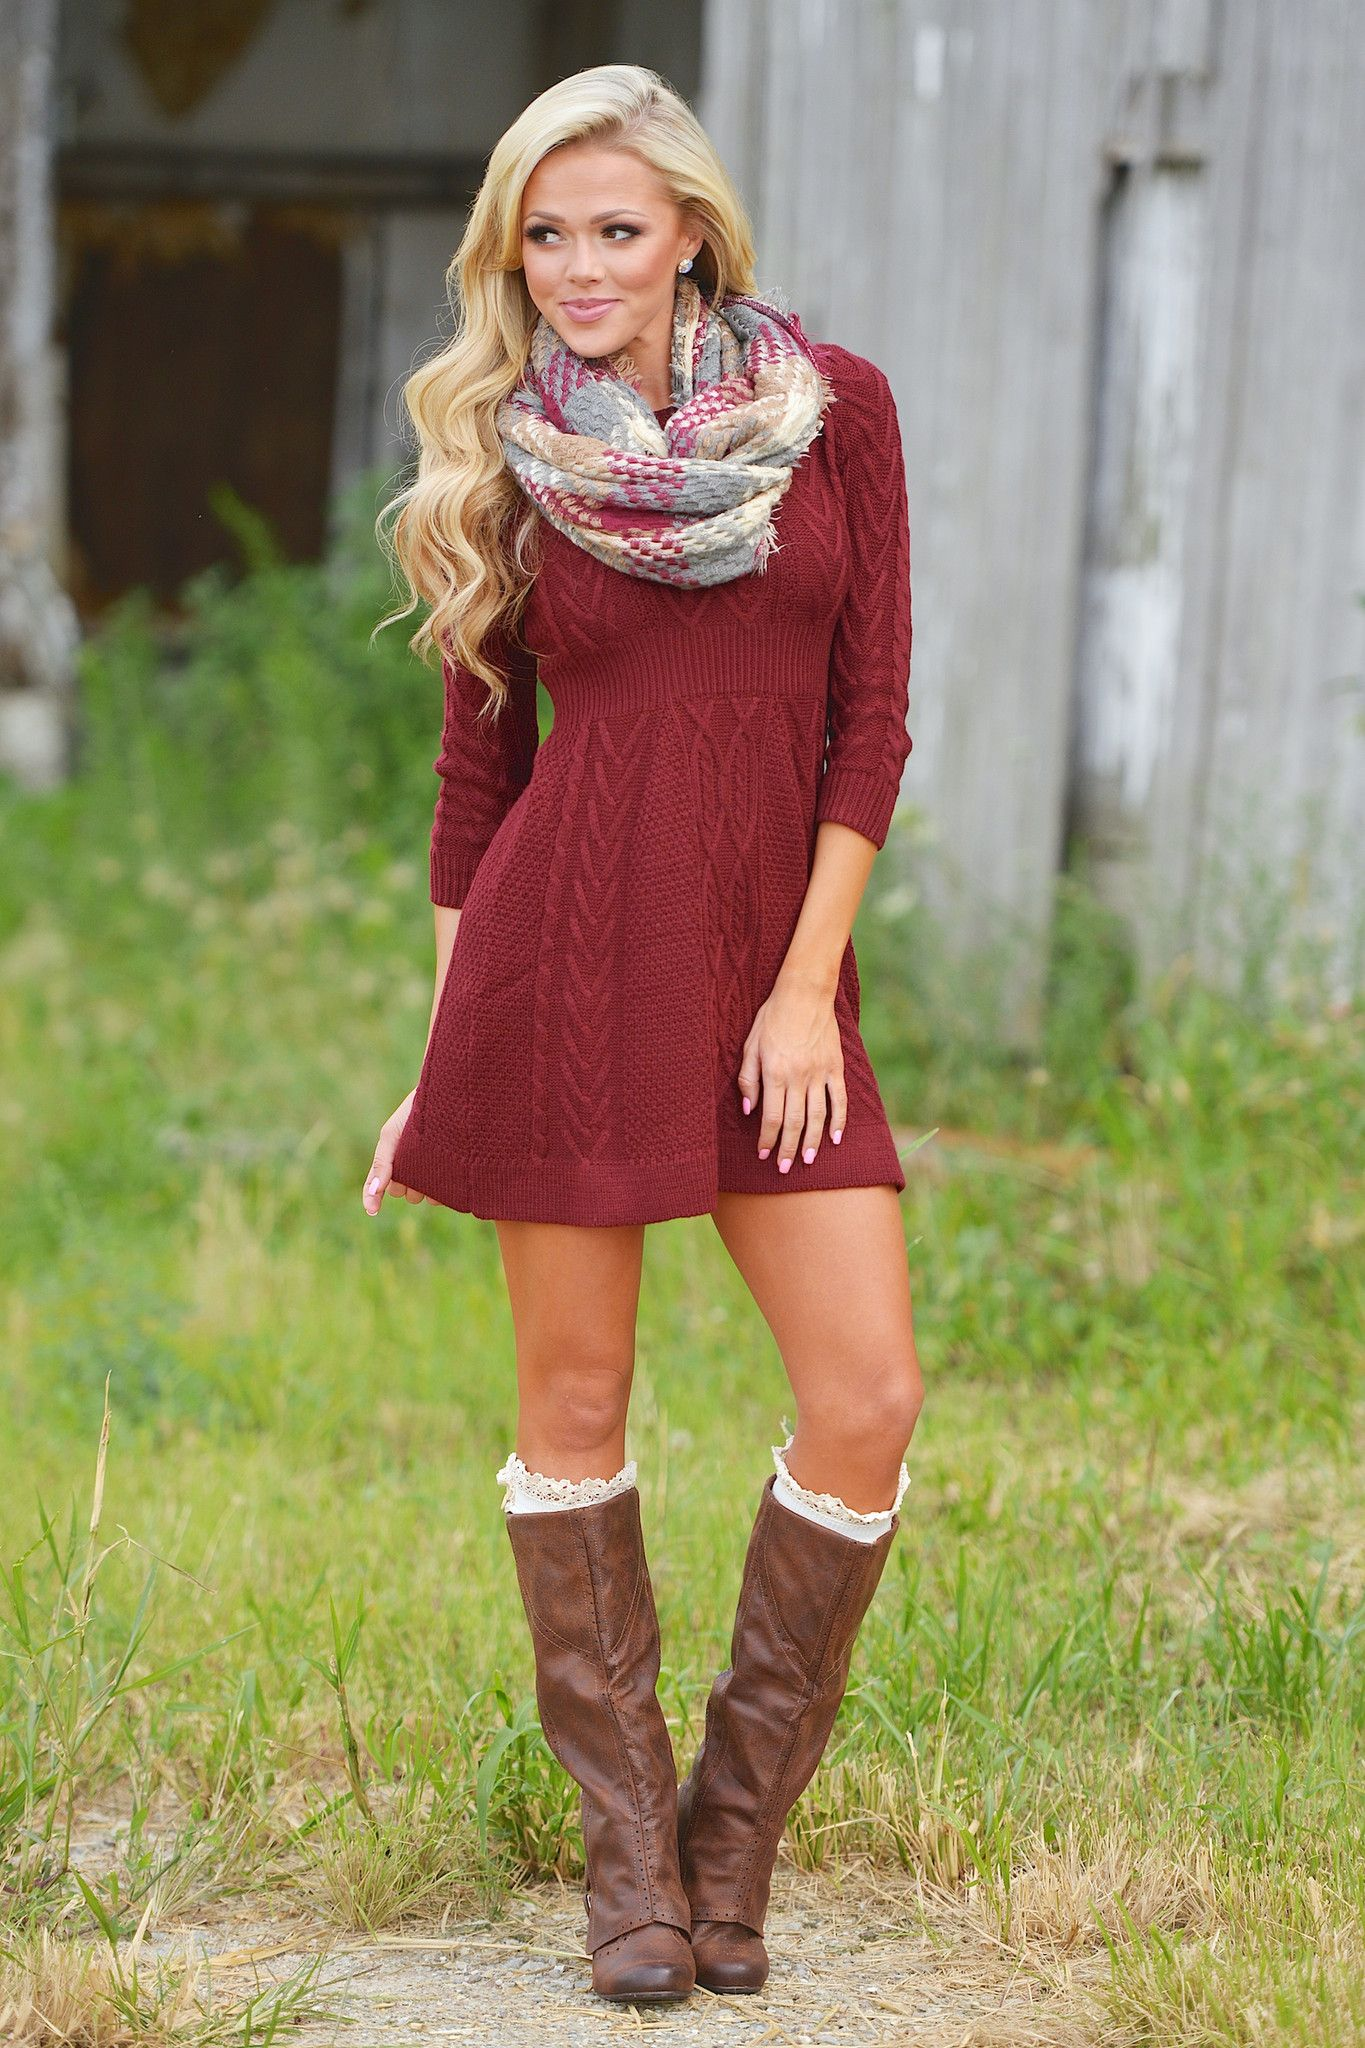 Pin by haley kirchner on cute outfits pinterest candy boutique